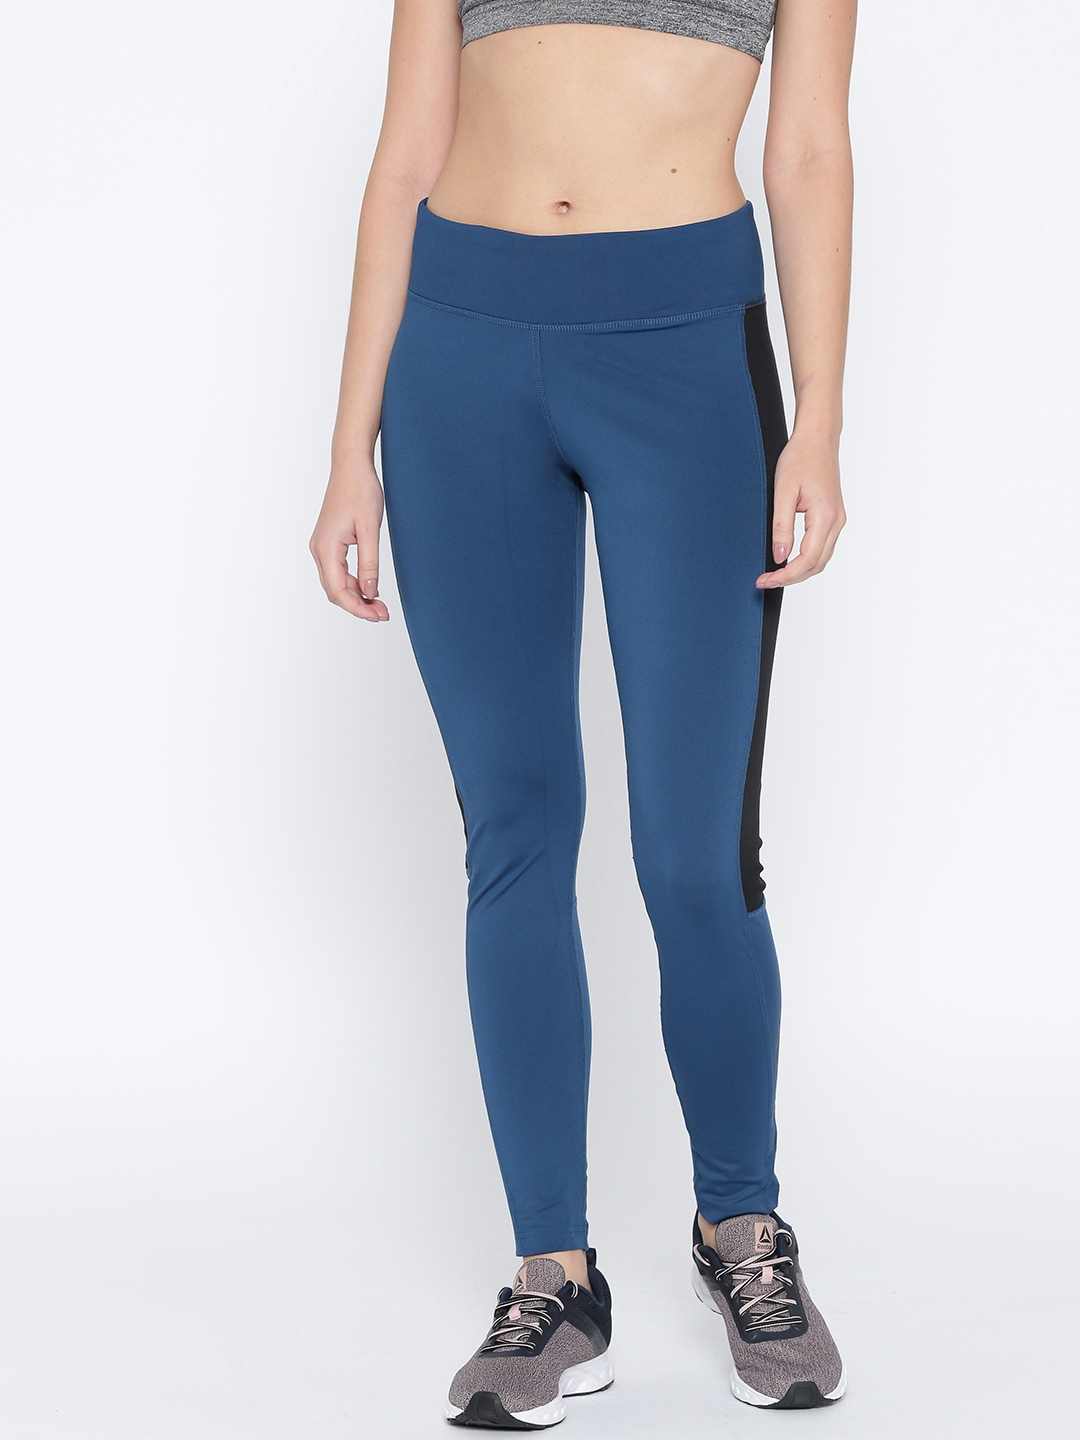 Reebok Women Teal Blue Workout Big Delta Training Tights